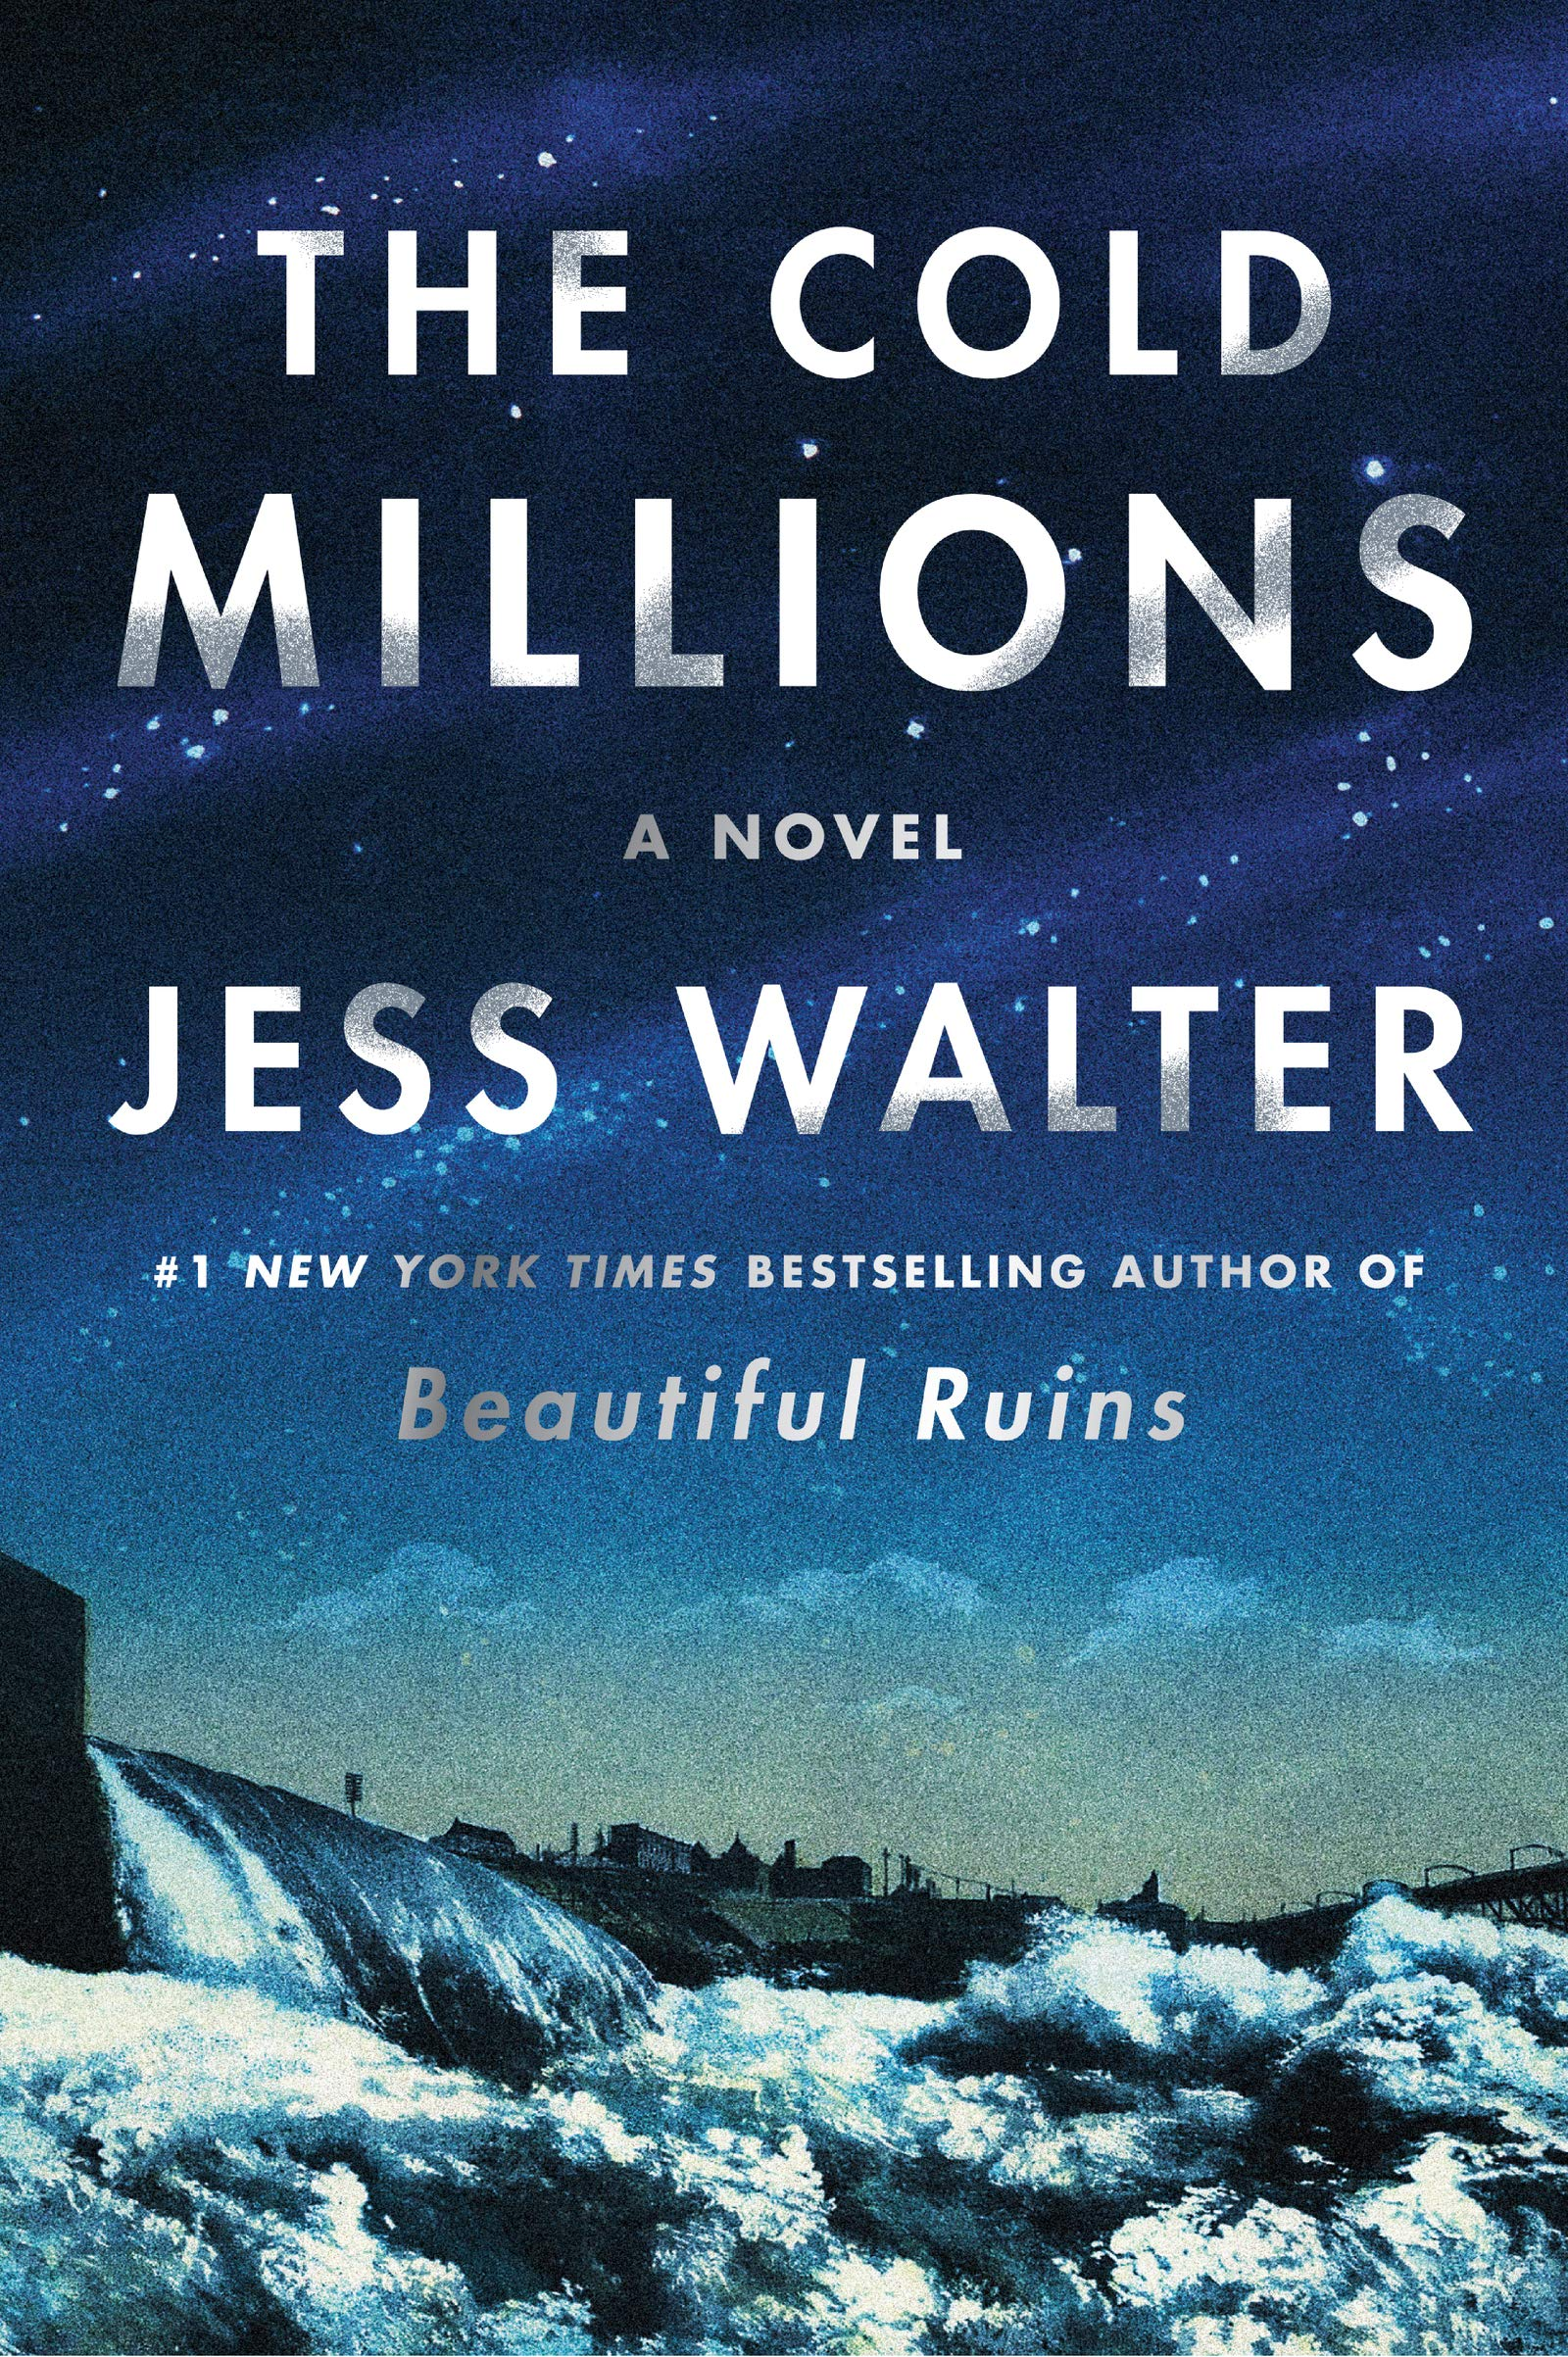 Book cover of The Cold Millions by Jess Walter.